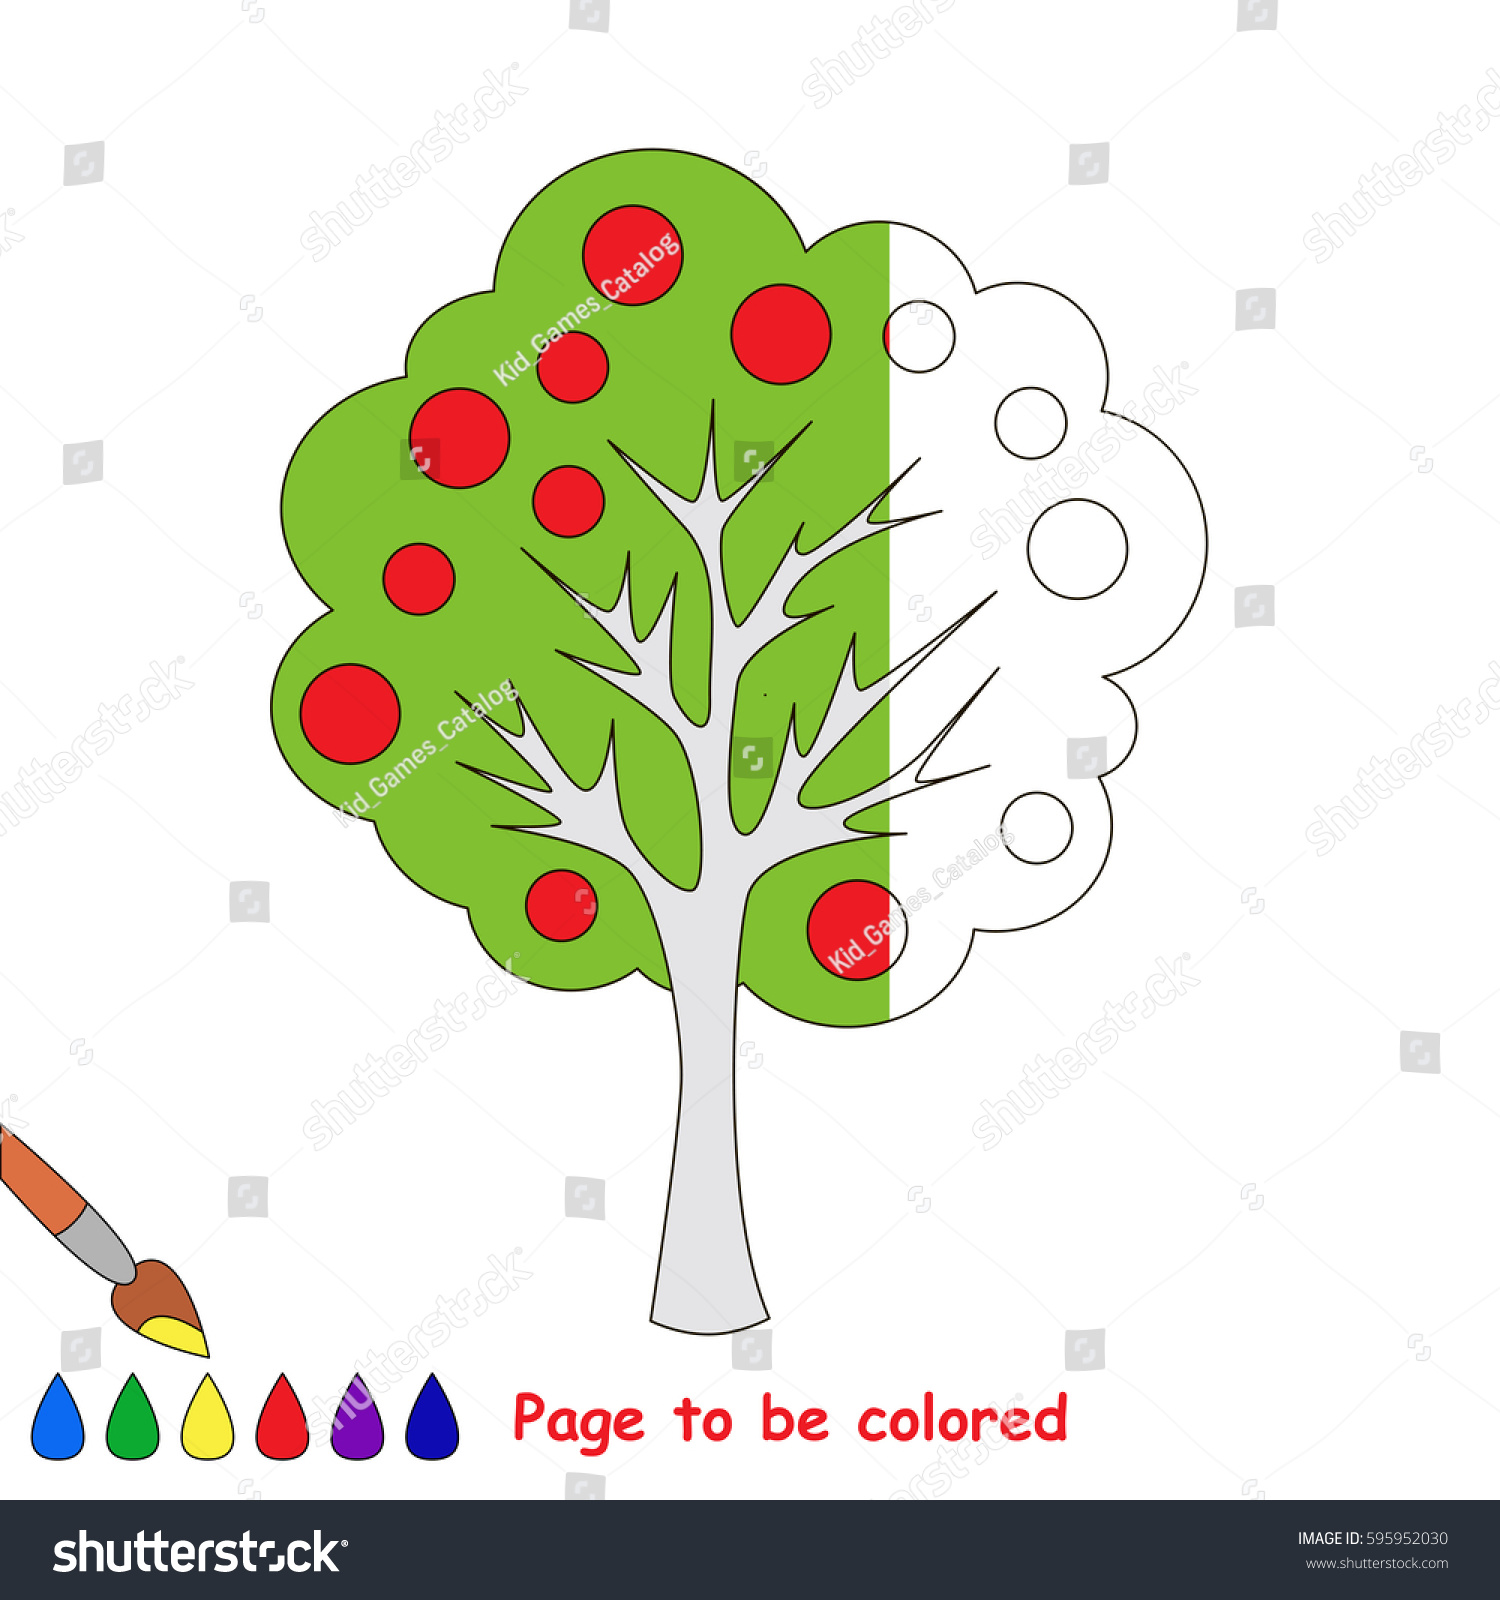 Apple Tree Coloring Book Educate Preschool Stock Vector (Royalty ...